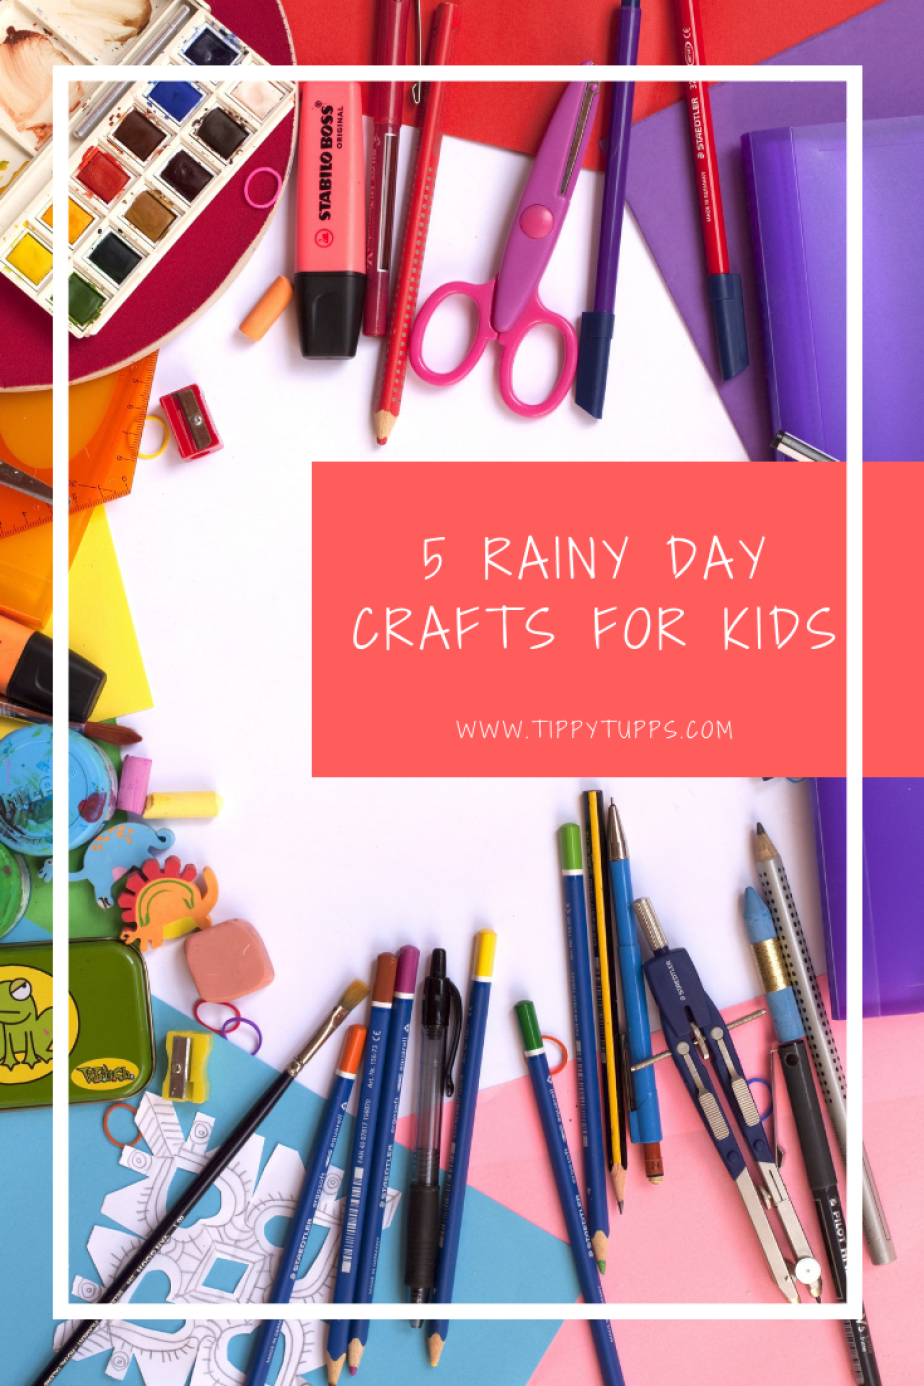 AD | collaboration - as we all know, children can become a challenge on a rainy day. So, to keep everyone entertrained, here are 5 rainy day crafts for kids that they'll love.